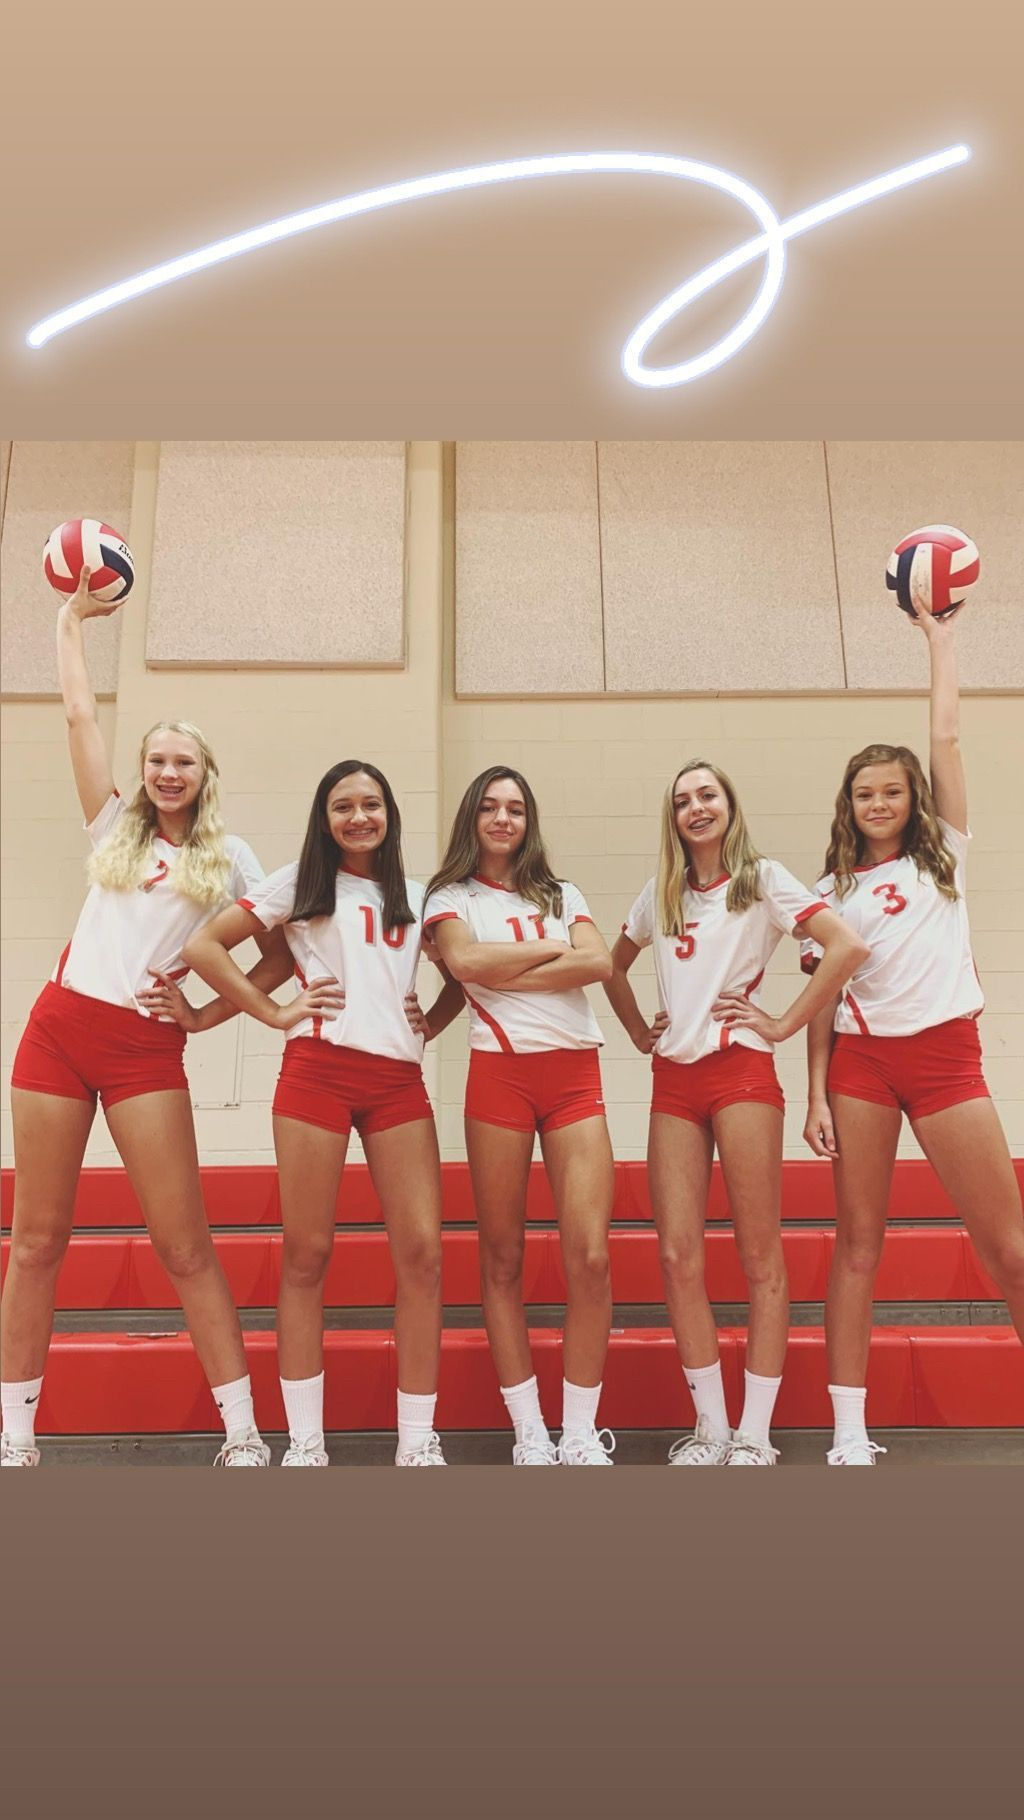 Pinterest Gracemotal Agracemotal Gracemotal Pinterest In 2020 Volleyball Outfits Women Volleyball Volleyball Team Pictures